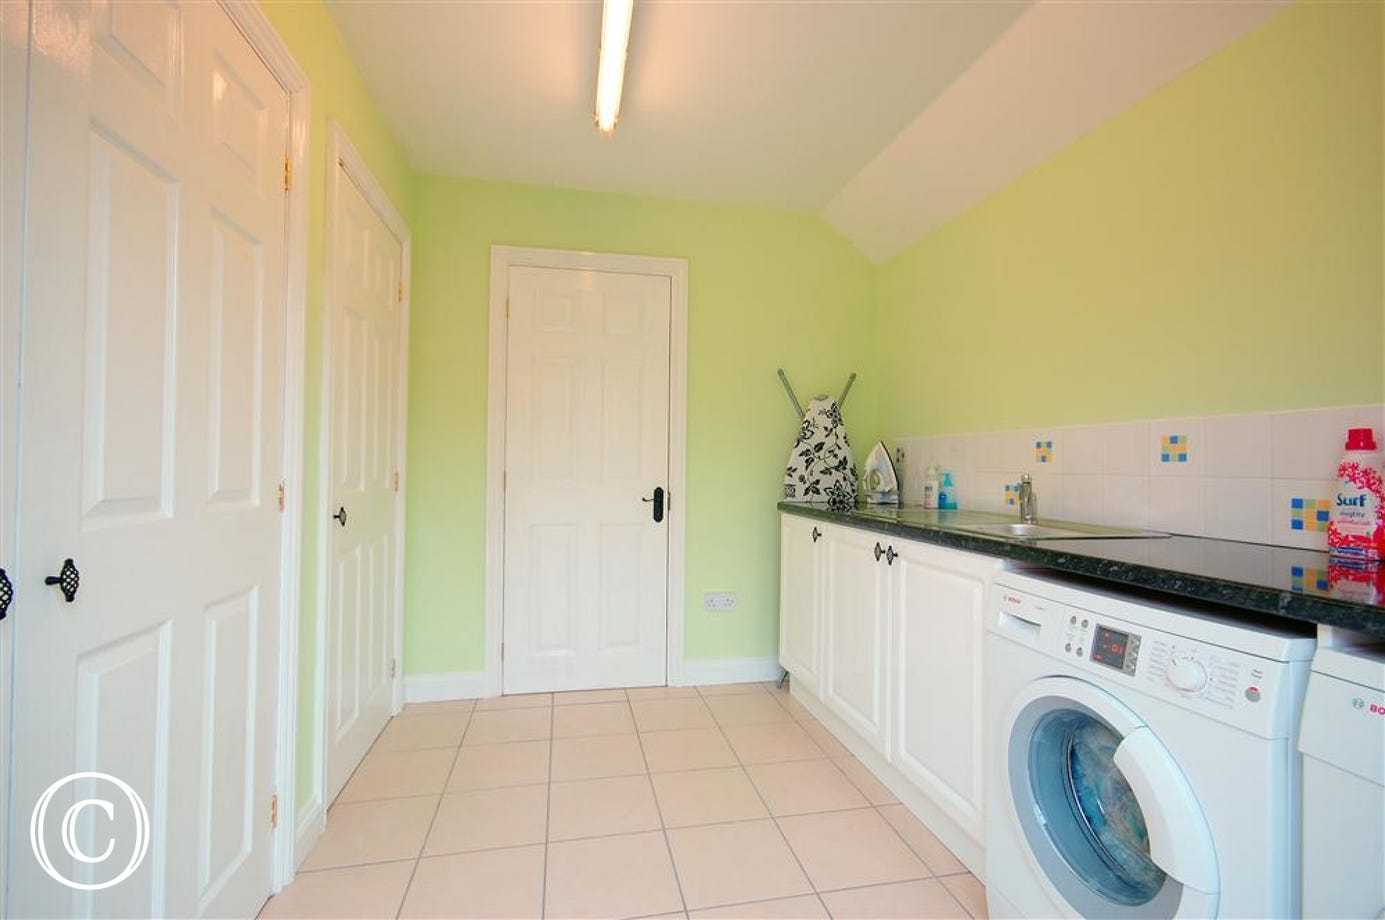 If you need to do some washing then feel free to make use of this utility area.